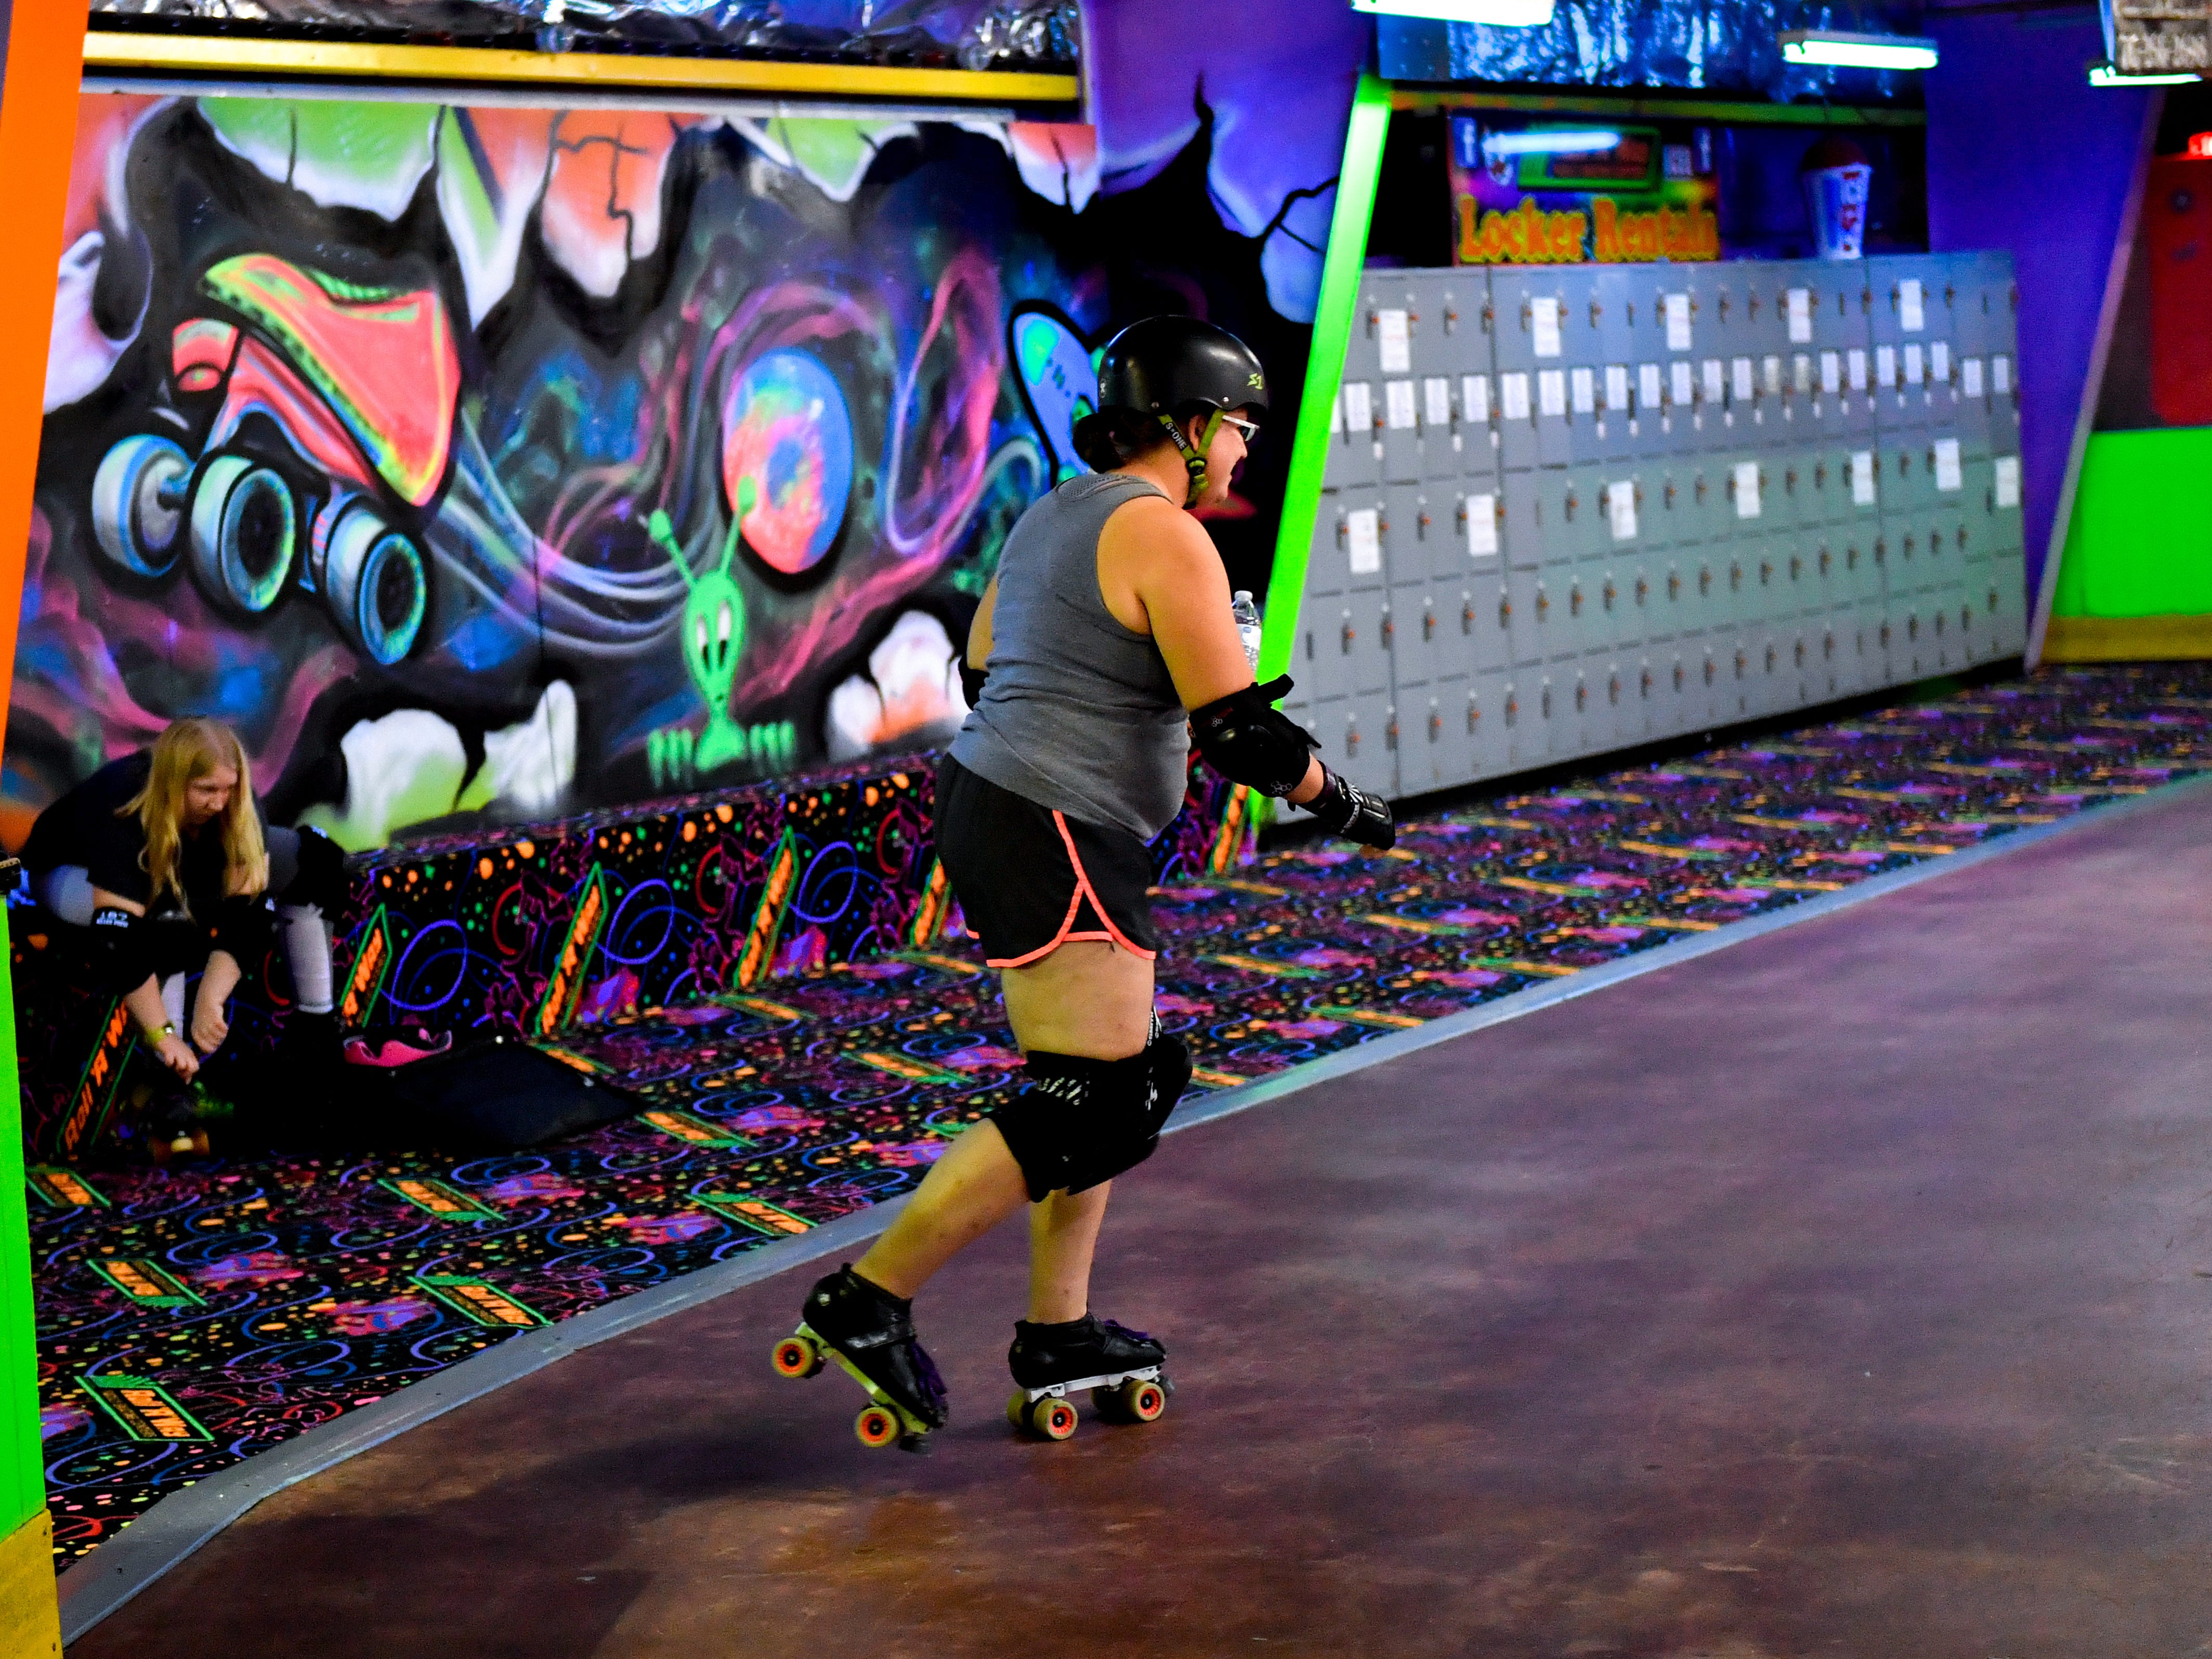 The York City Derby Dames take the rink to begin practice, Thursday, October 18, 2018.